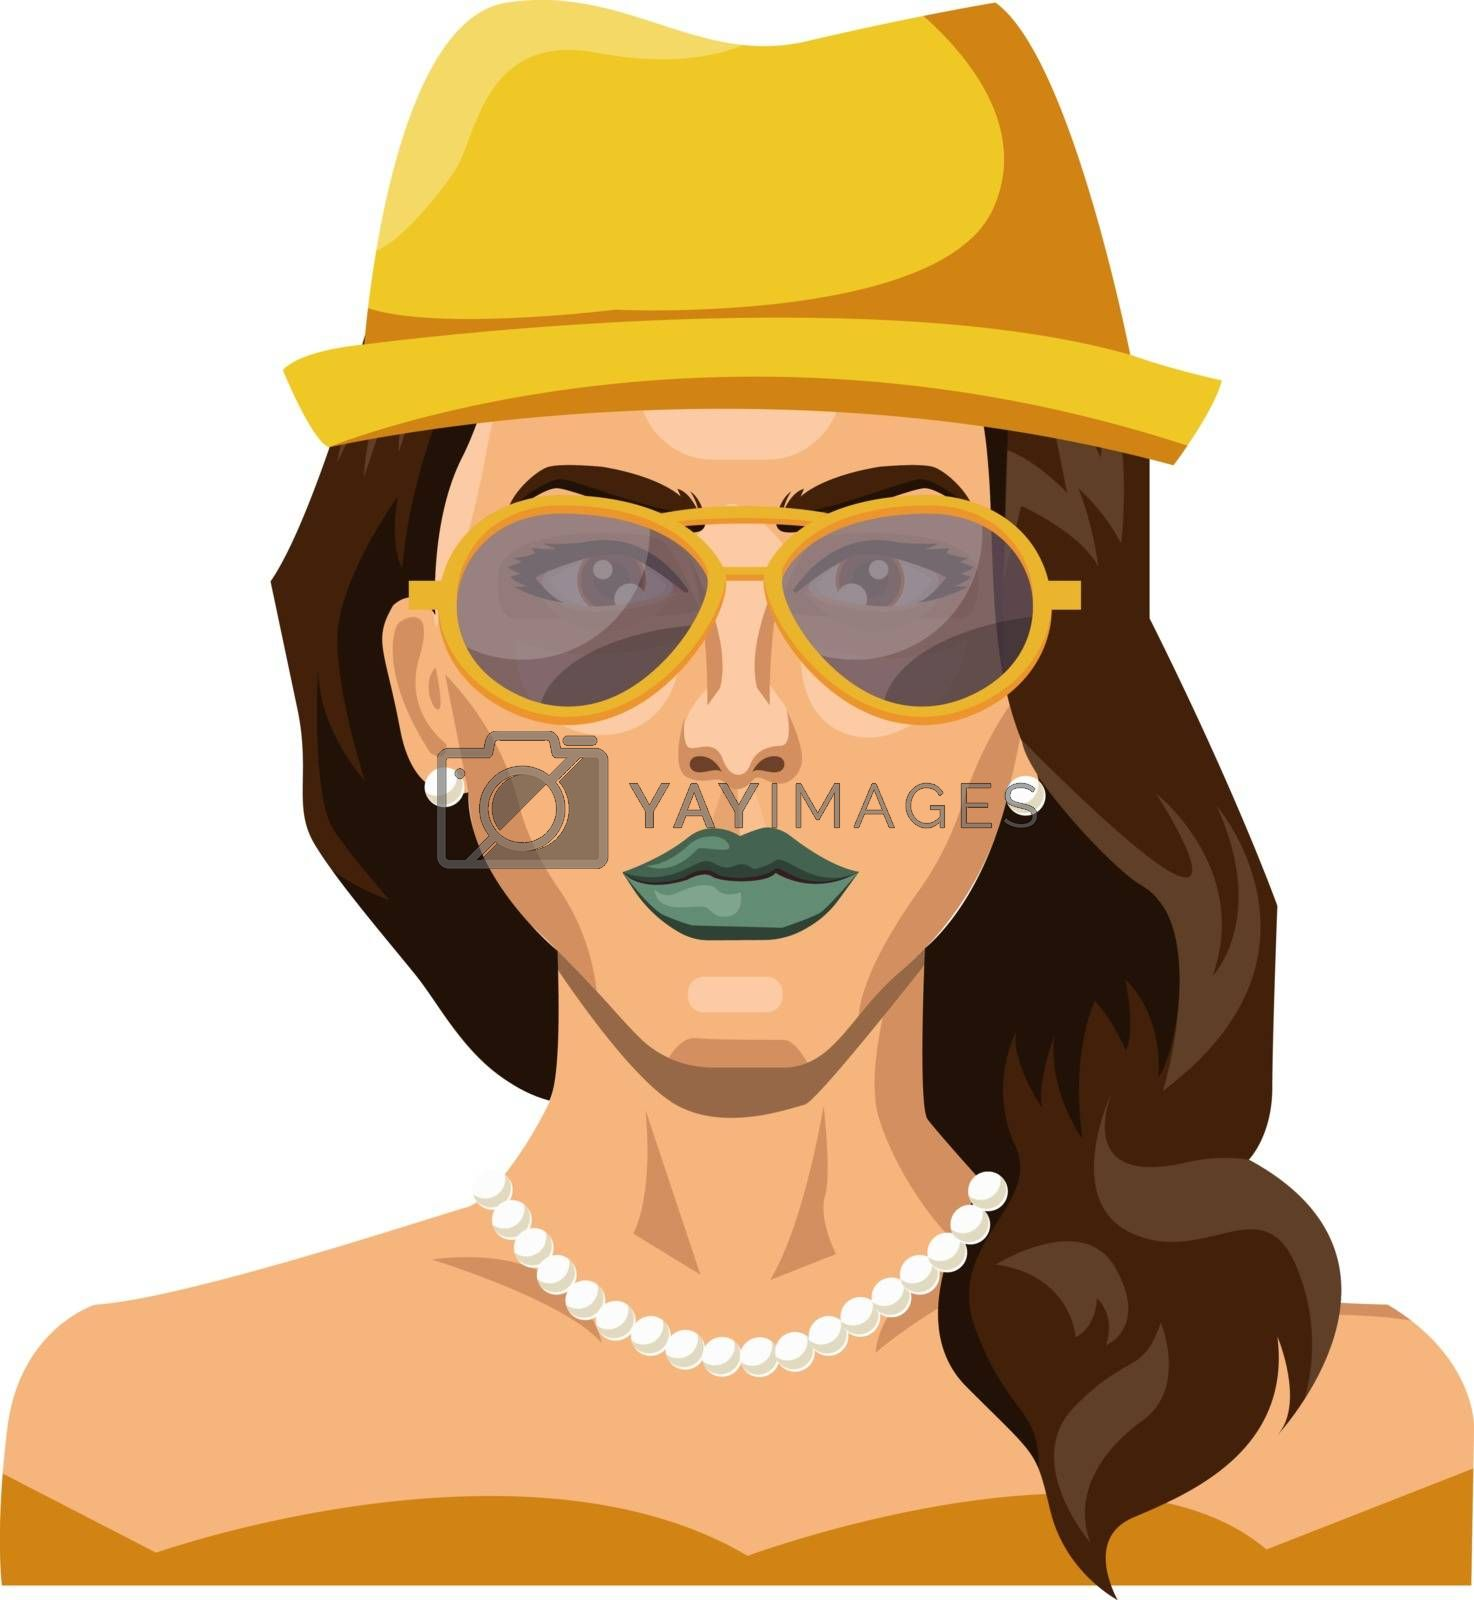 Royalty free image of Pretty girl wearing yellow hat and glasses illustration vector o by Morphart